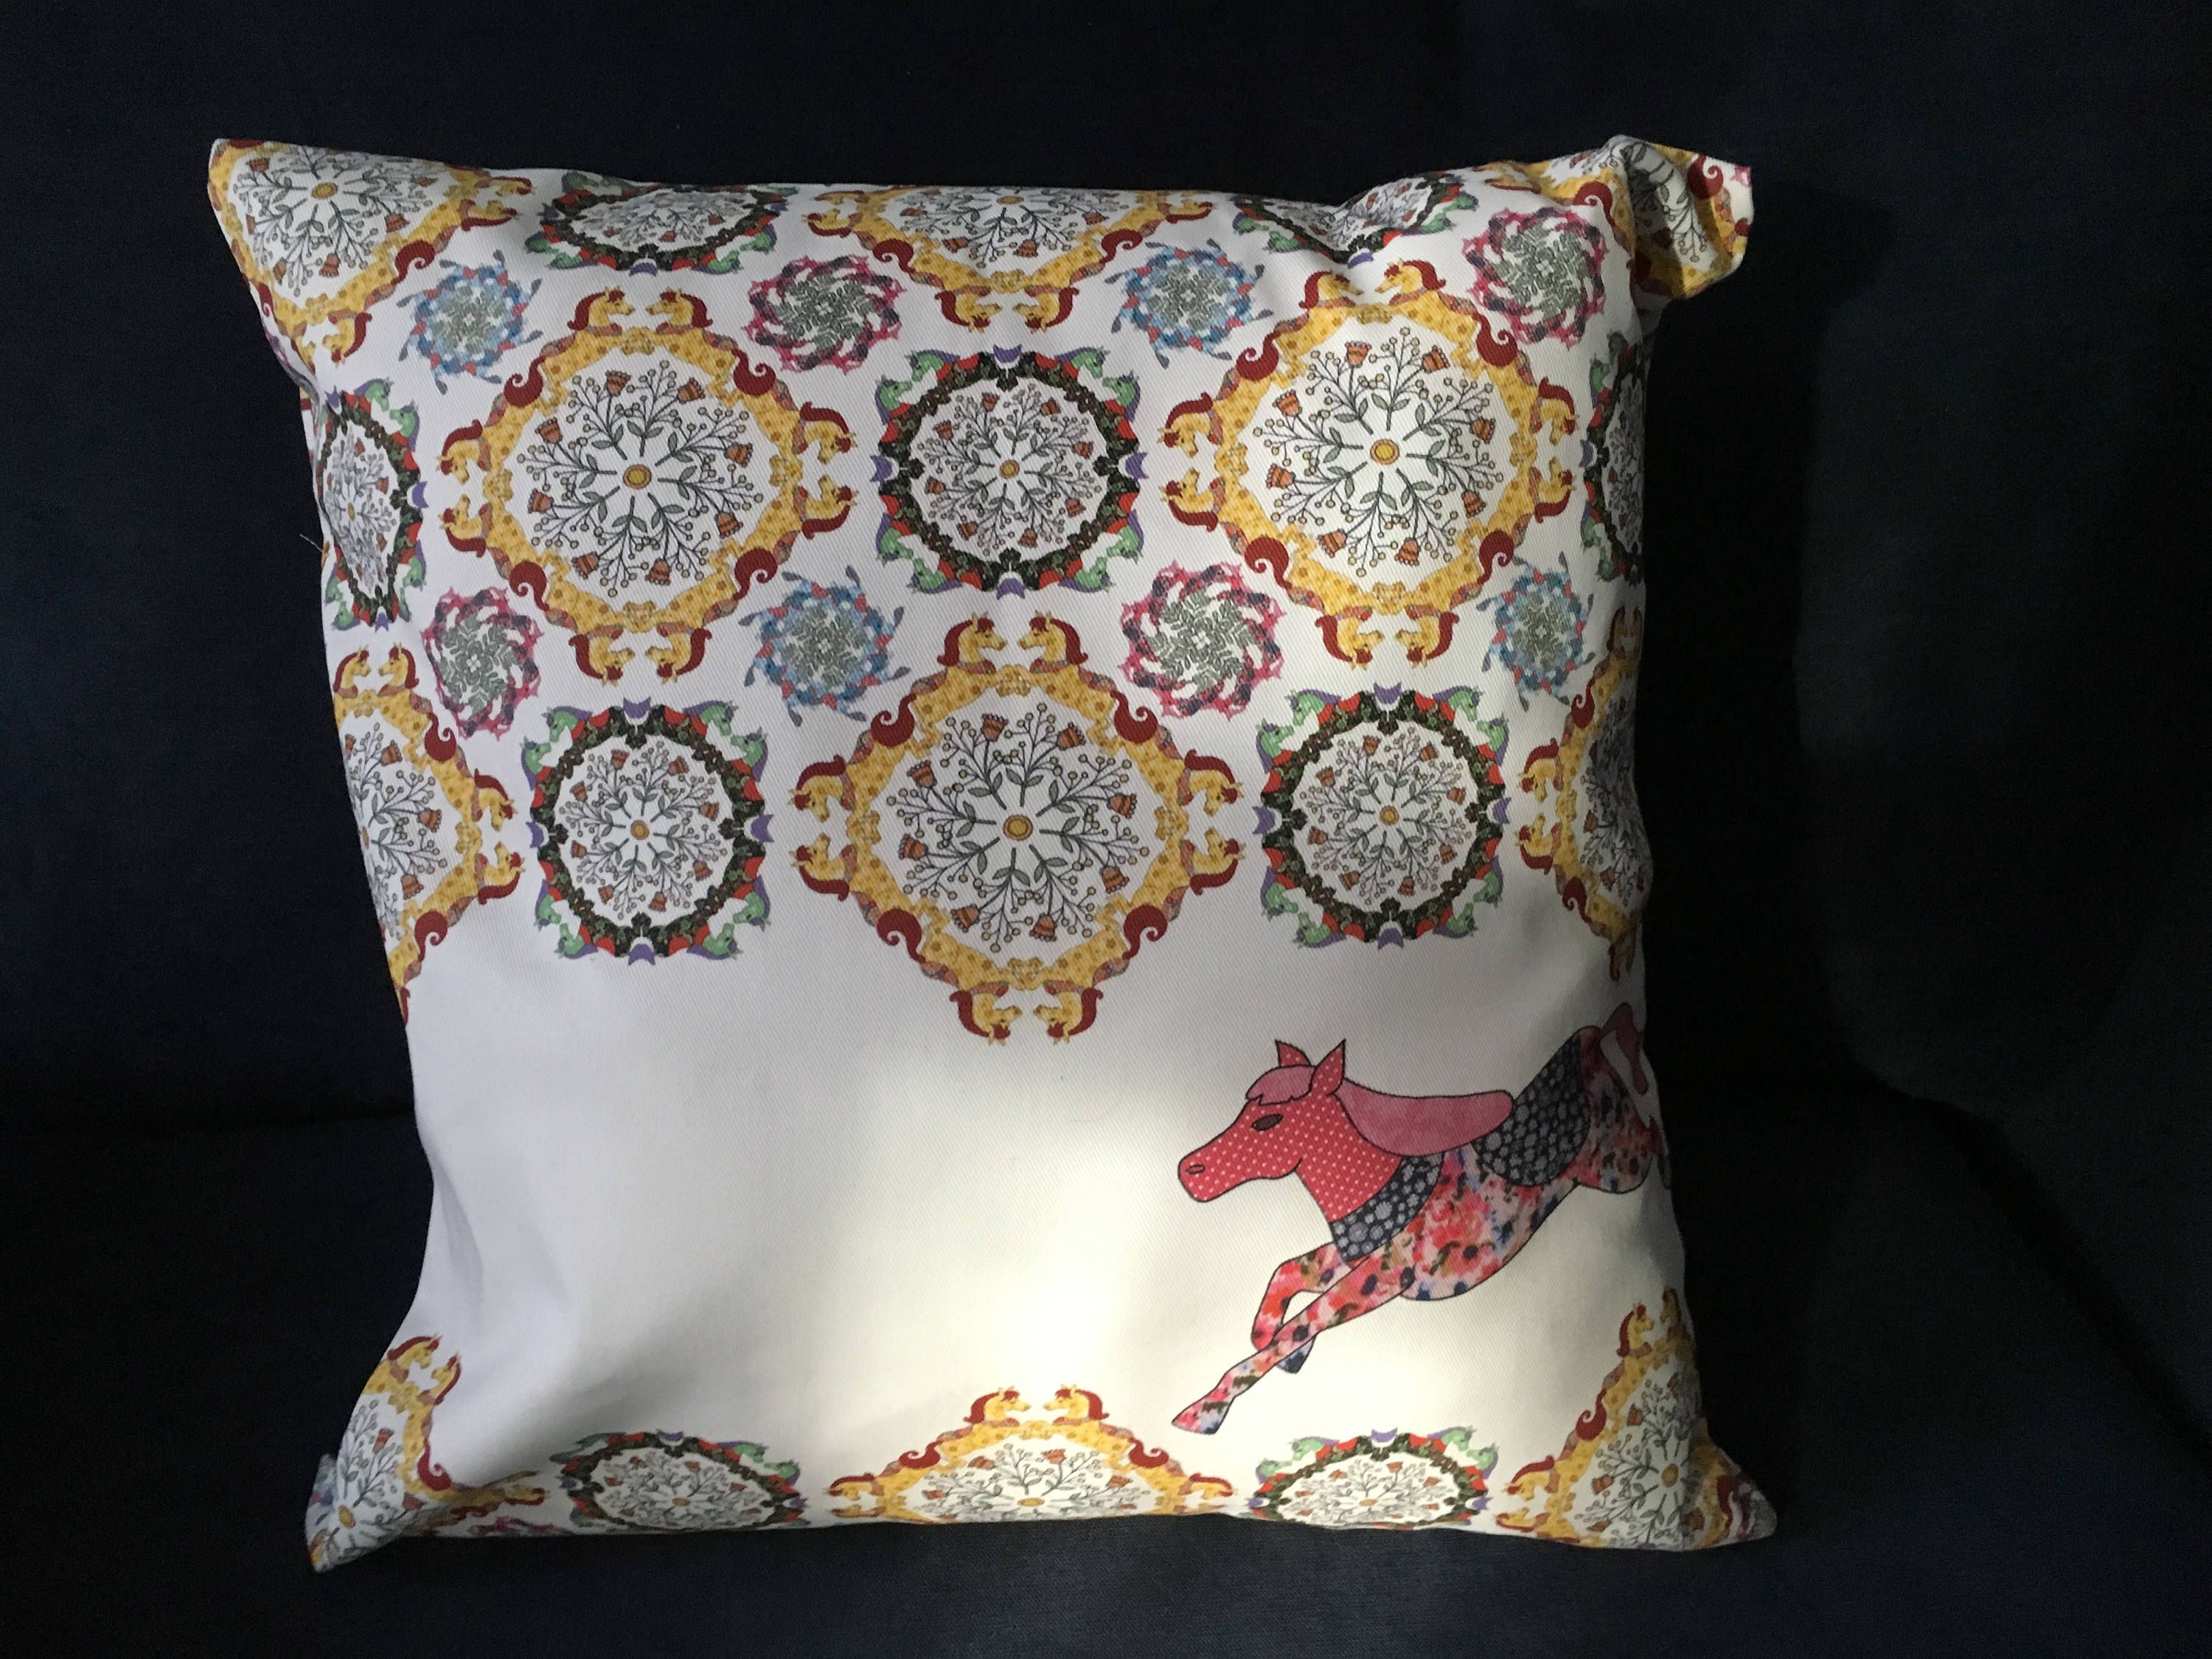 Pony chair cushion is a decorative pillows that we call horsing